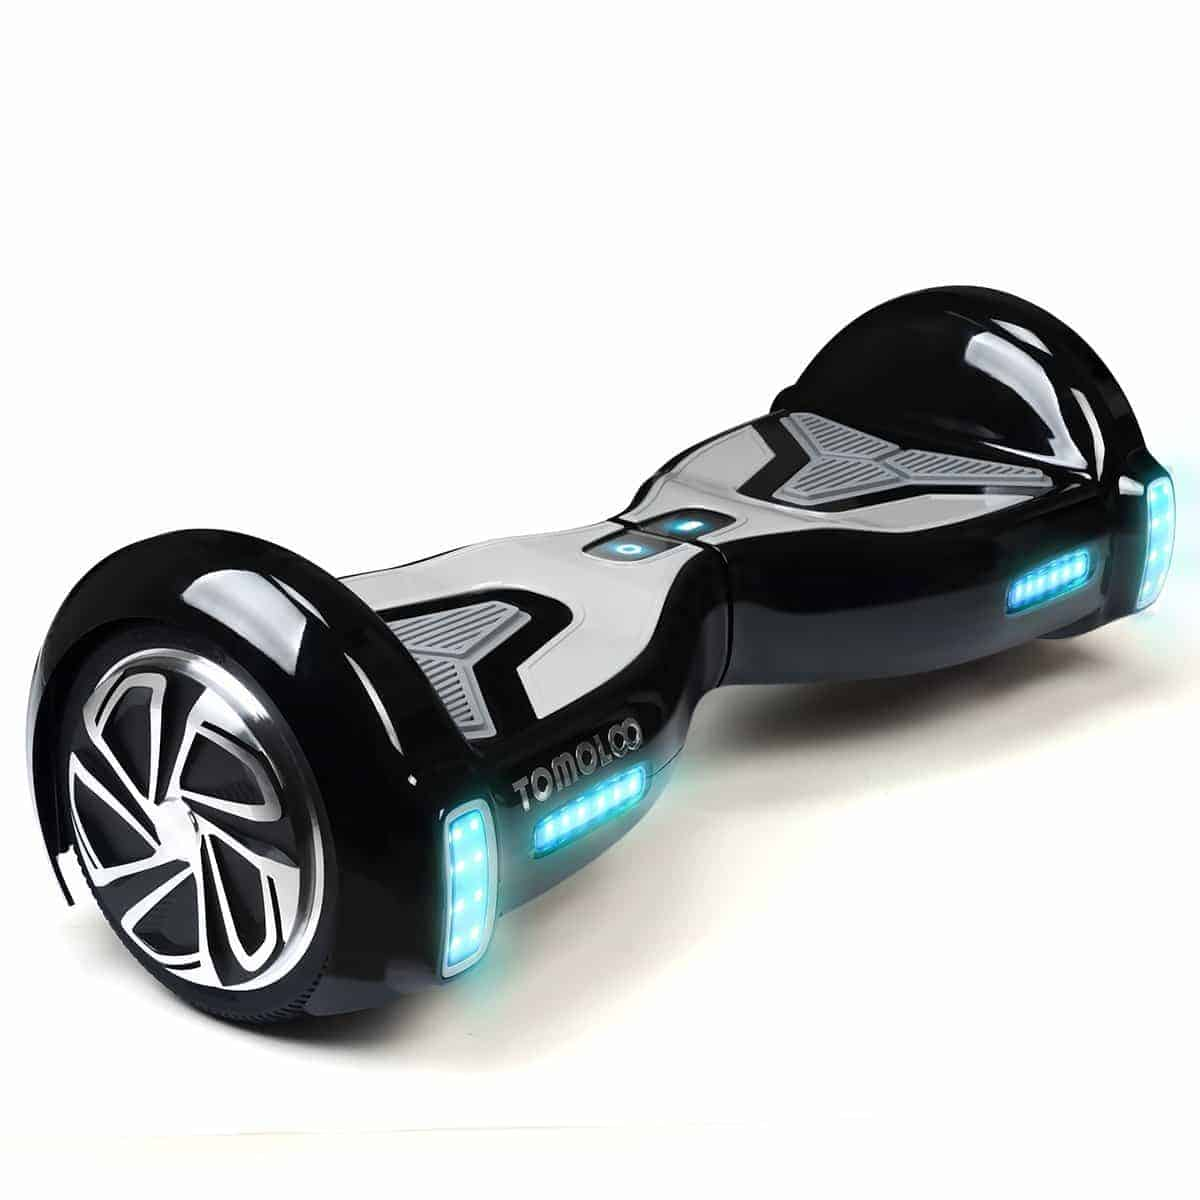 How to choose a hoverboard in 2017